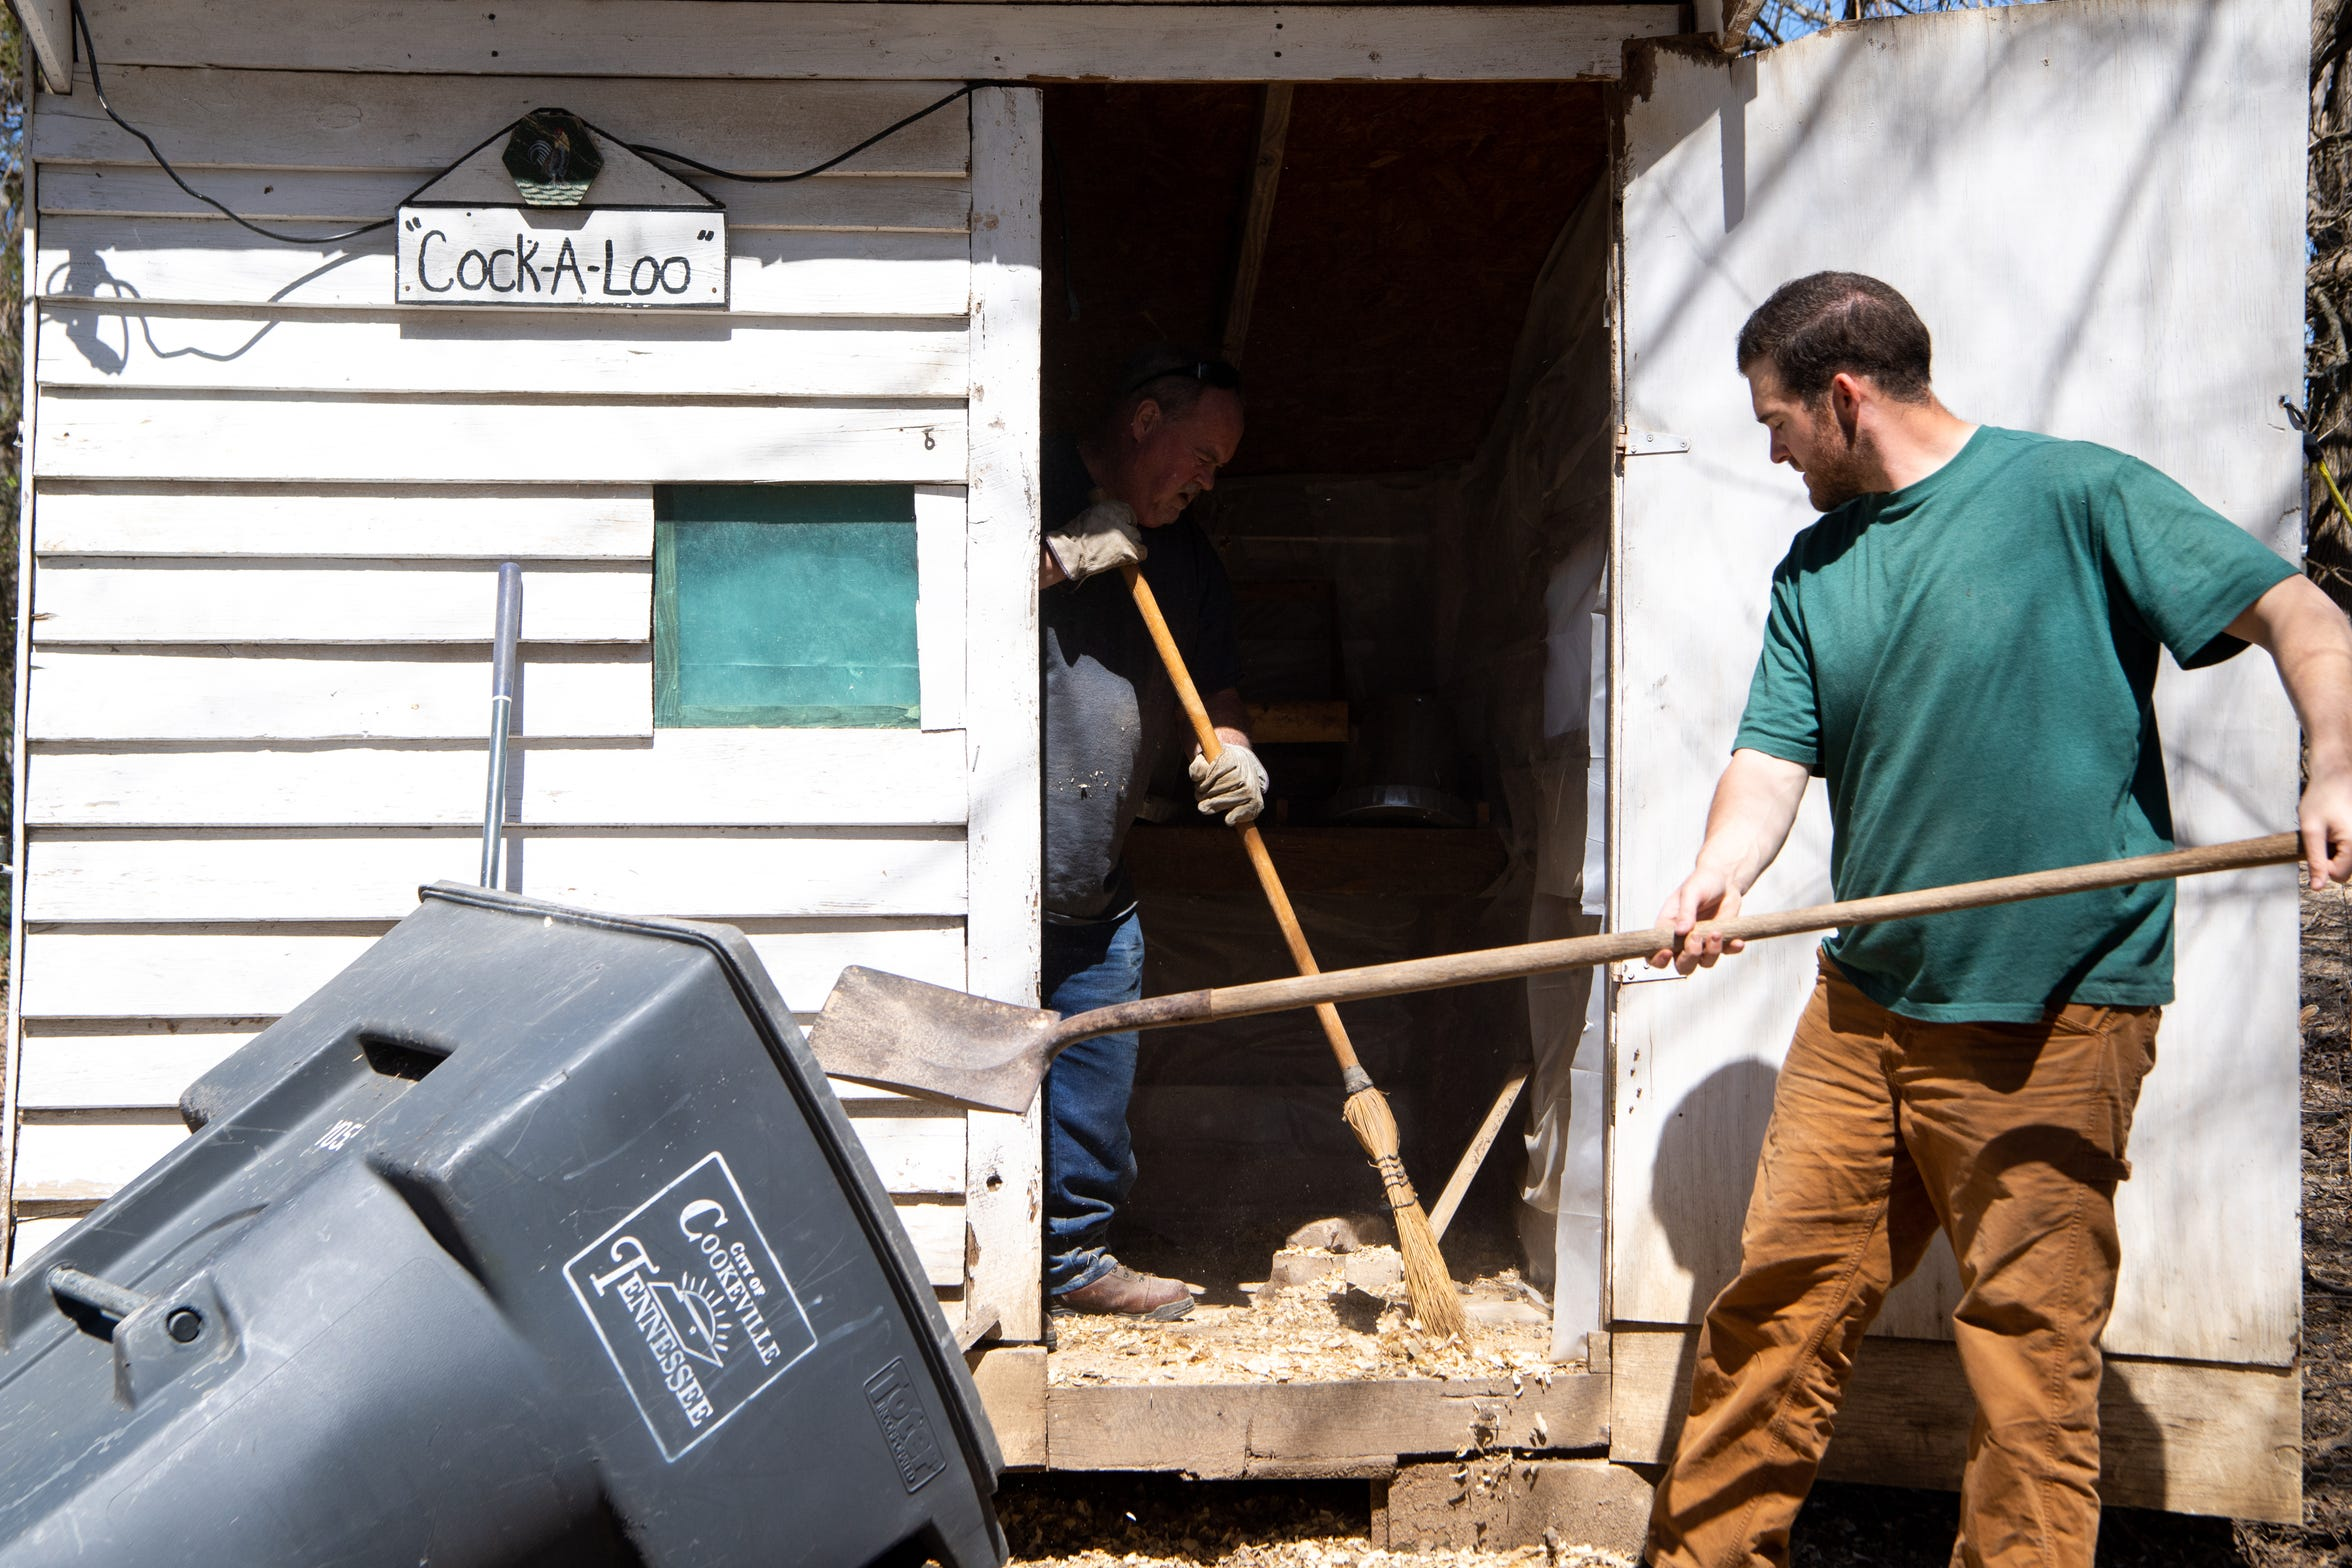 Larry Elmore and his son, Justin, clean a chicken coop on the Cookeville, Tenn., farm of Dr. Sam Barnes on March 23, 2019. Addiction once eroded their relationship, but it has been rebuilt since Elmore went to rehab.